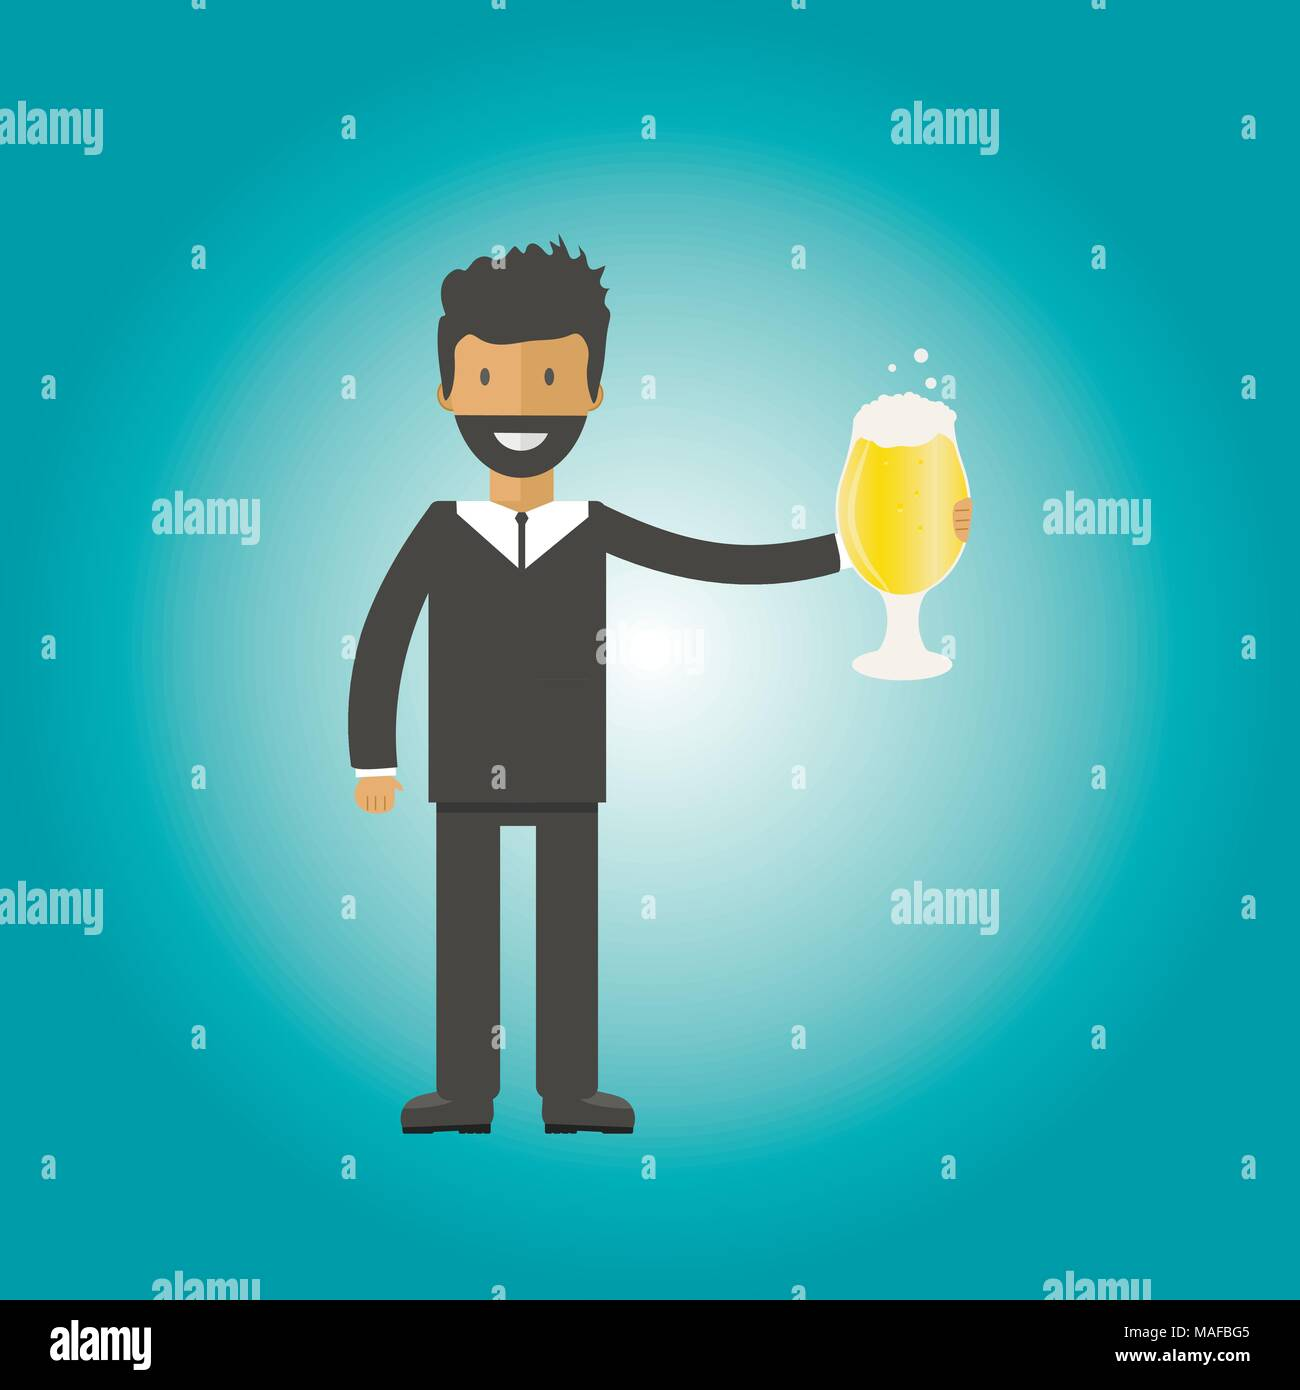 Man with beer bottle, mugs and glasses. Vector icon with alcoholic beverages. Wheat beer, lager, craft beer, ale. Stock Vector